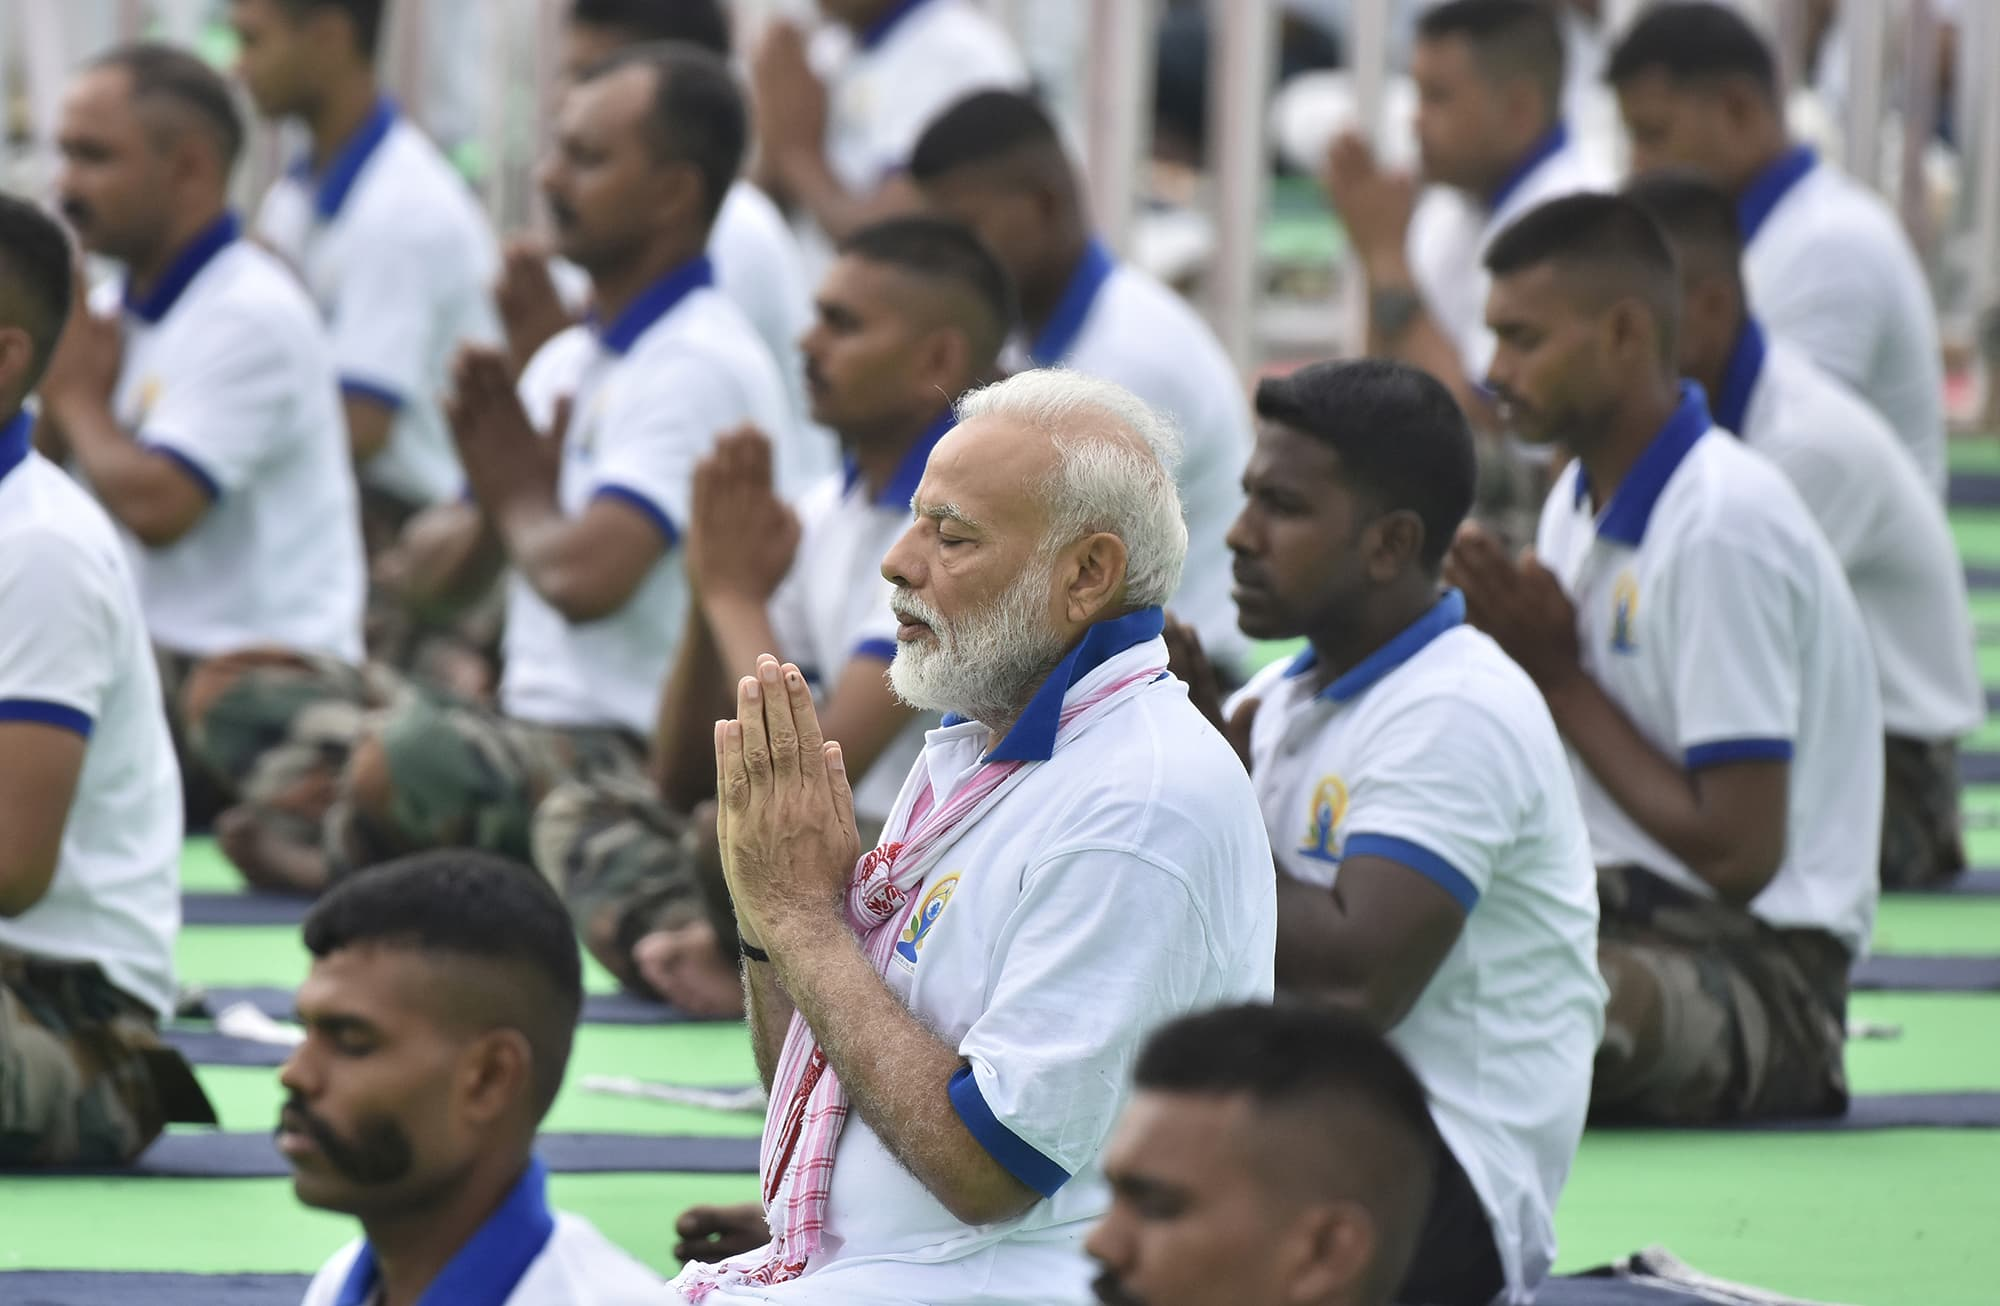 Indian Prime Minister Narendra Modi performs yoga on International Yoga Day in Ranchi, India on June 21. — Reuters